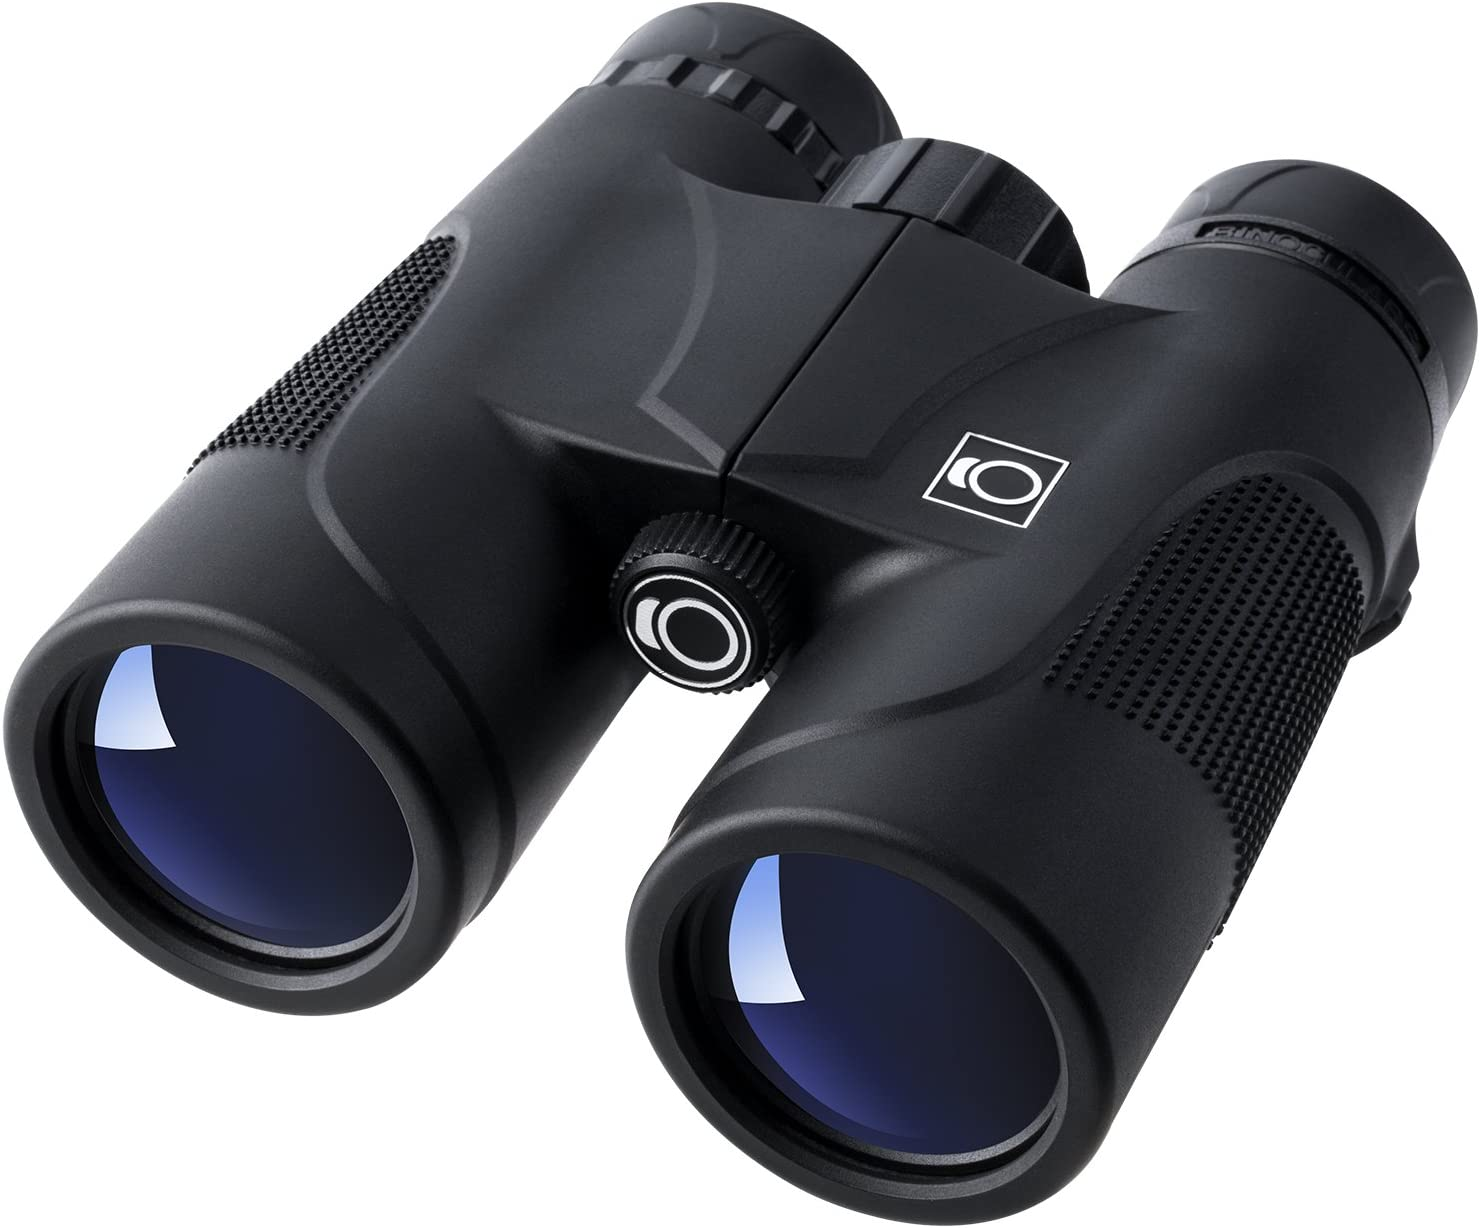 K F Concept HD 10 X 42 Roof Prism Waterproof High-Powered Binoculars Telescope with Low Light Night Vision for Bird Watching, Outdoor, Hunting, Camping, Hiking Black